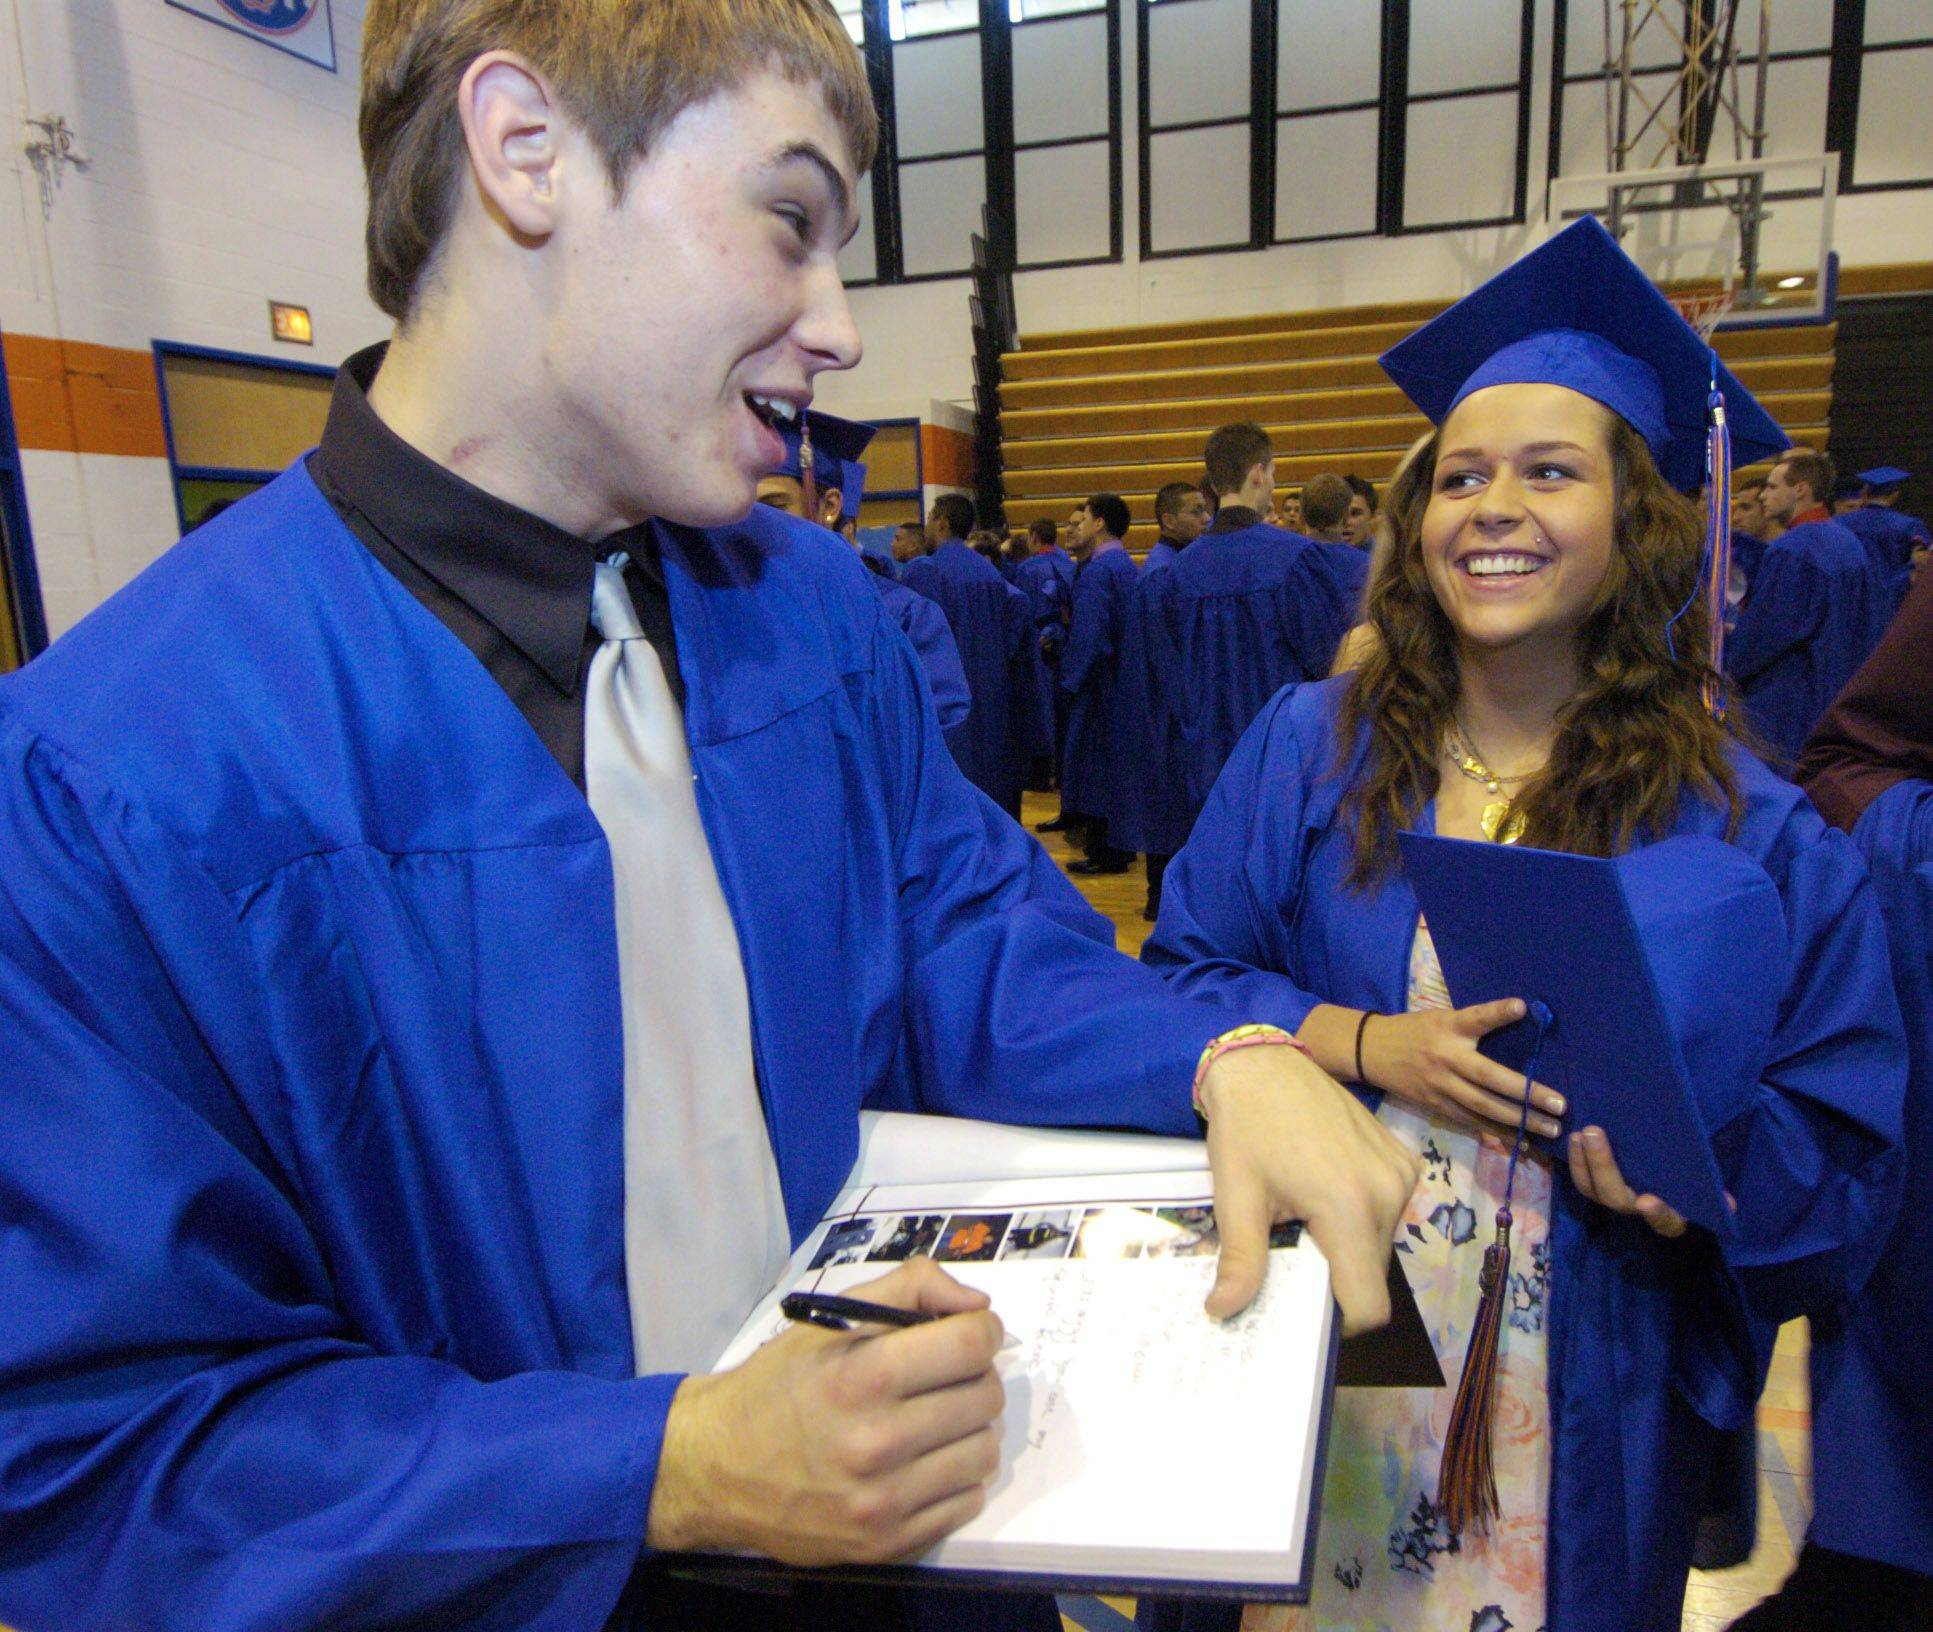 Colin Byrne chats with Liz Berley as he autographs a yearbook for another friend prior to the Fenton High School graduation Sunday.